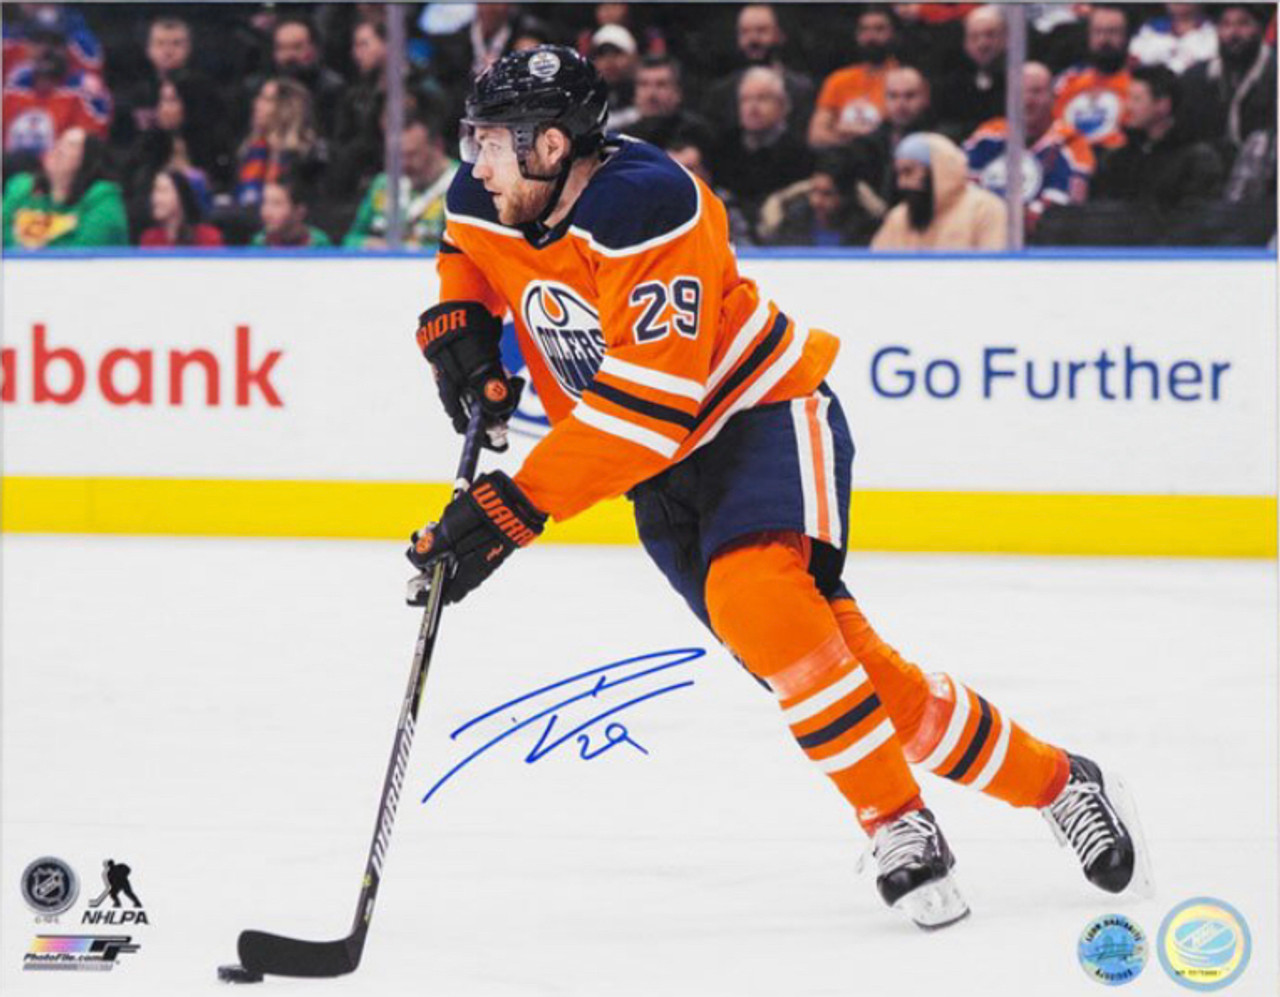 on sale 41df3 03fae Leon Draisaitl Edmonton Oilers Autographed Skating Up Orange Jersey 8x10  Photo